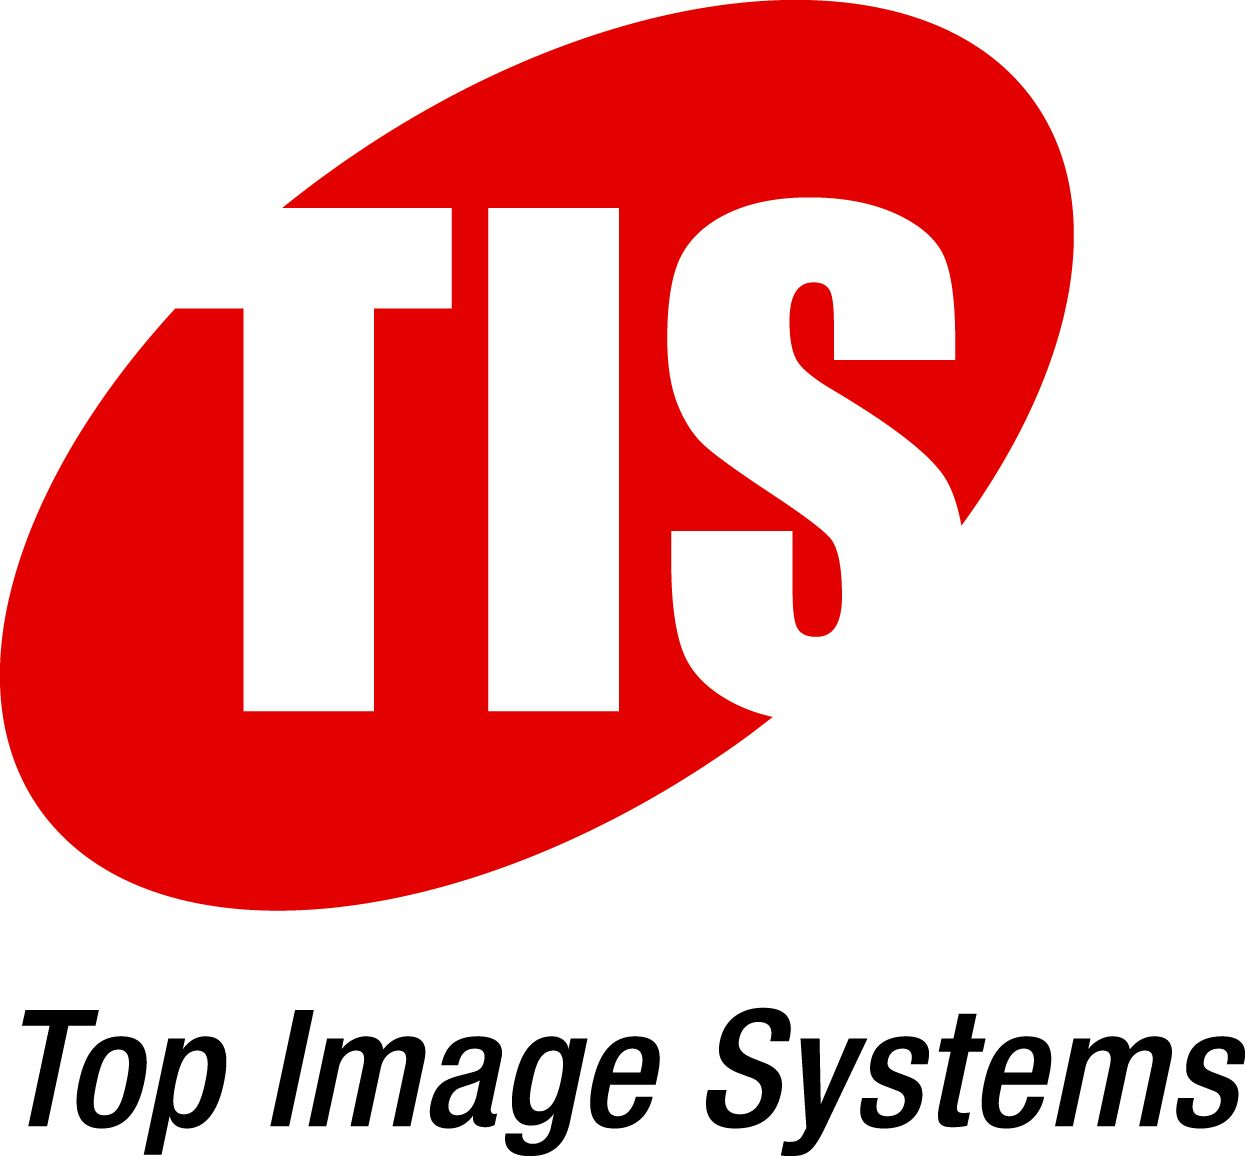 Top Image Systems Recruits U.S Software Industry Veteran Brendan Reidy to the Position of CEO